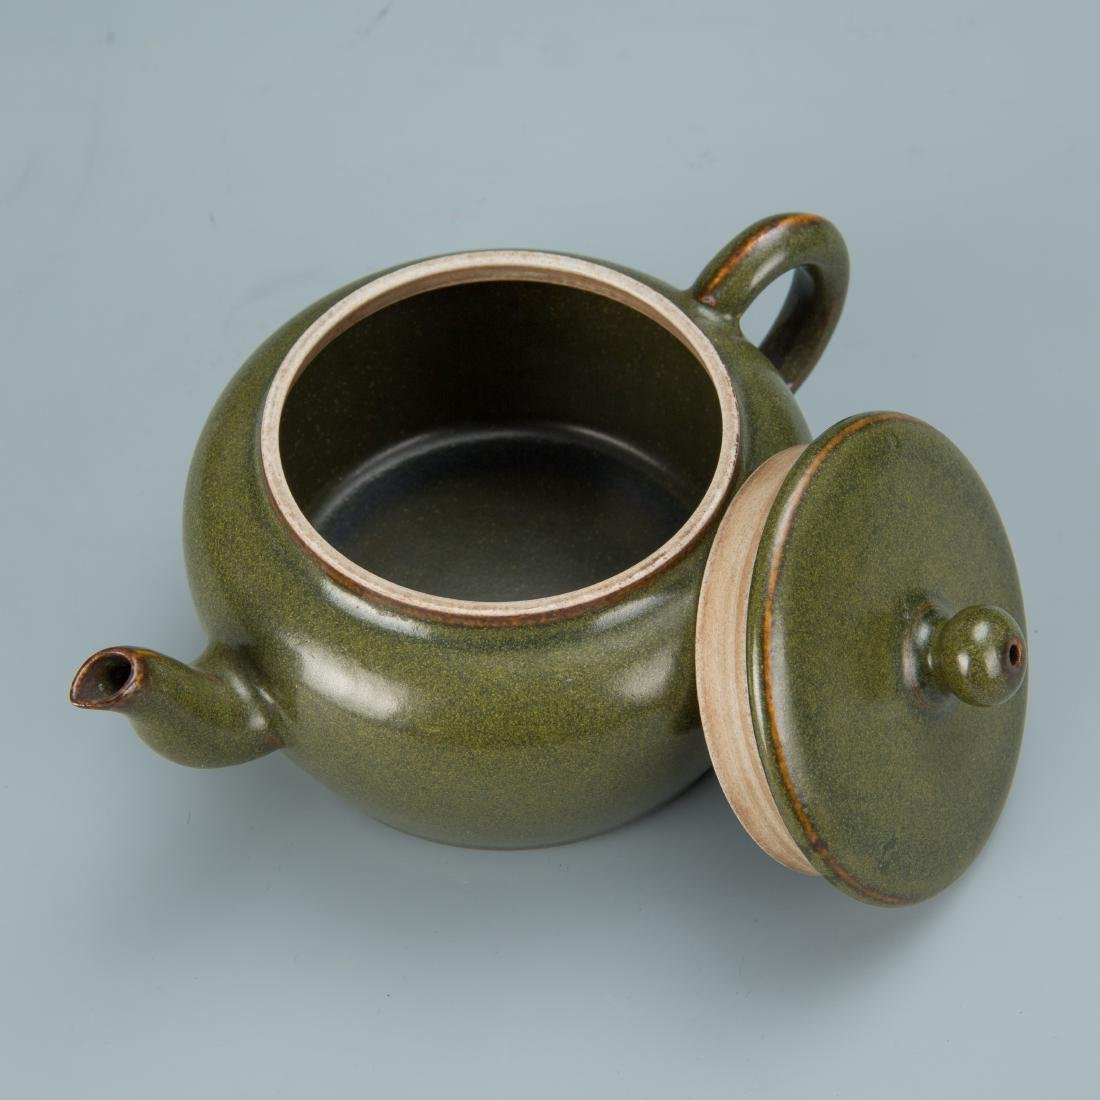 Green Glazed Porcelain Tea Pot with Mark - 4